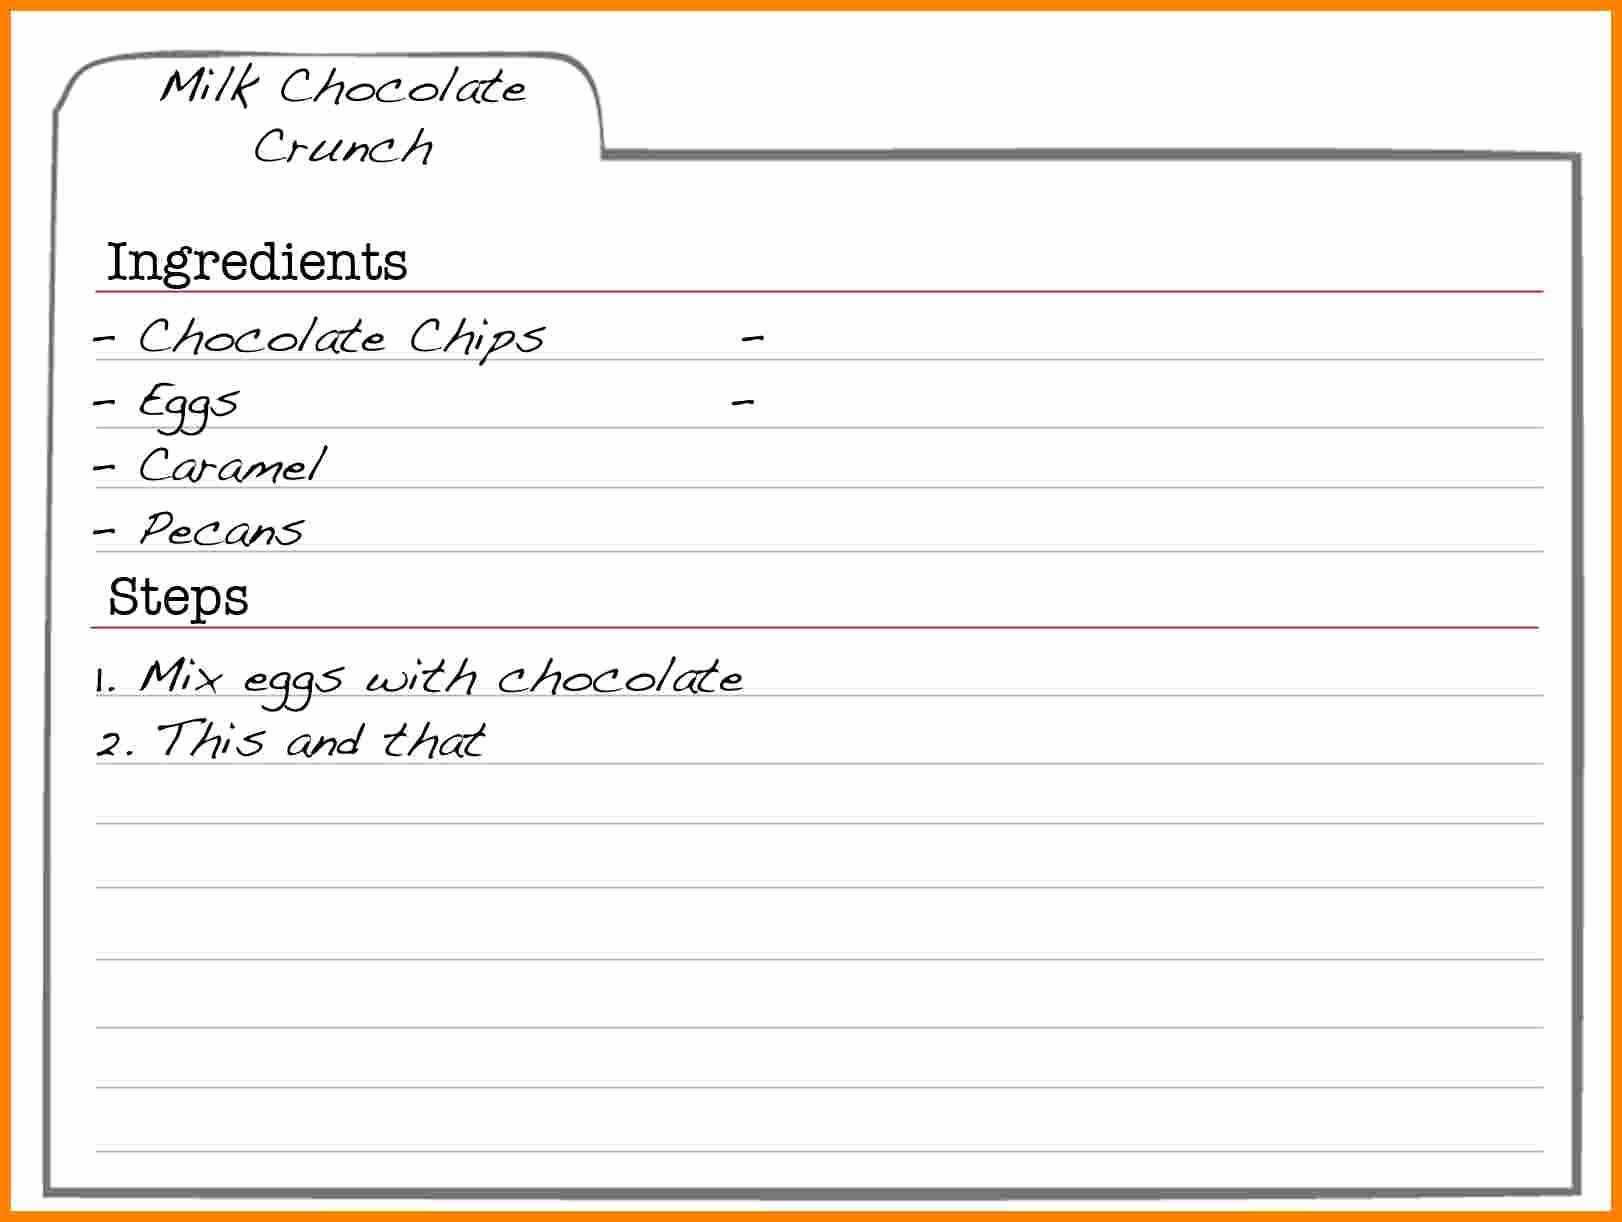 Blank Recipe Template For Word - Horizonconsulting.co With Regard To Full Page Recipe Template For Word